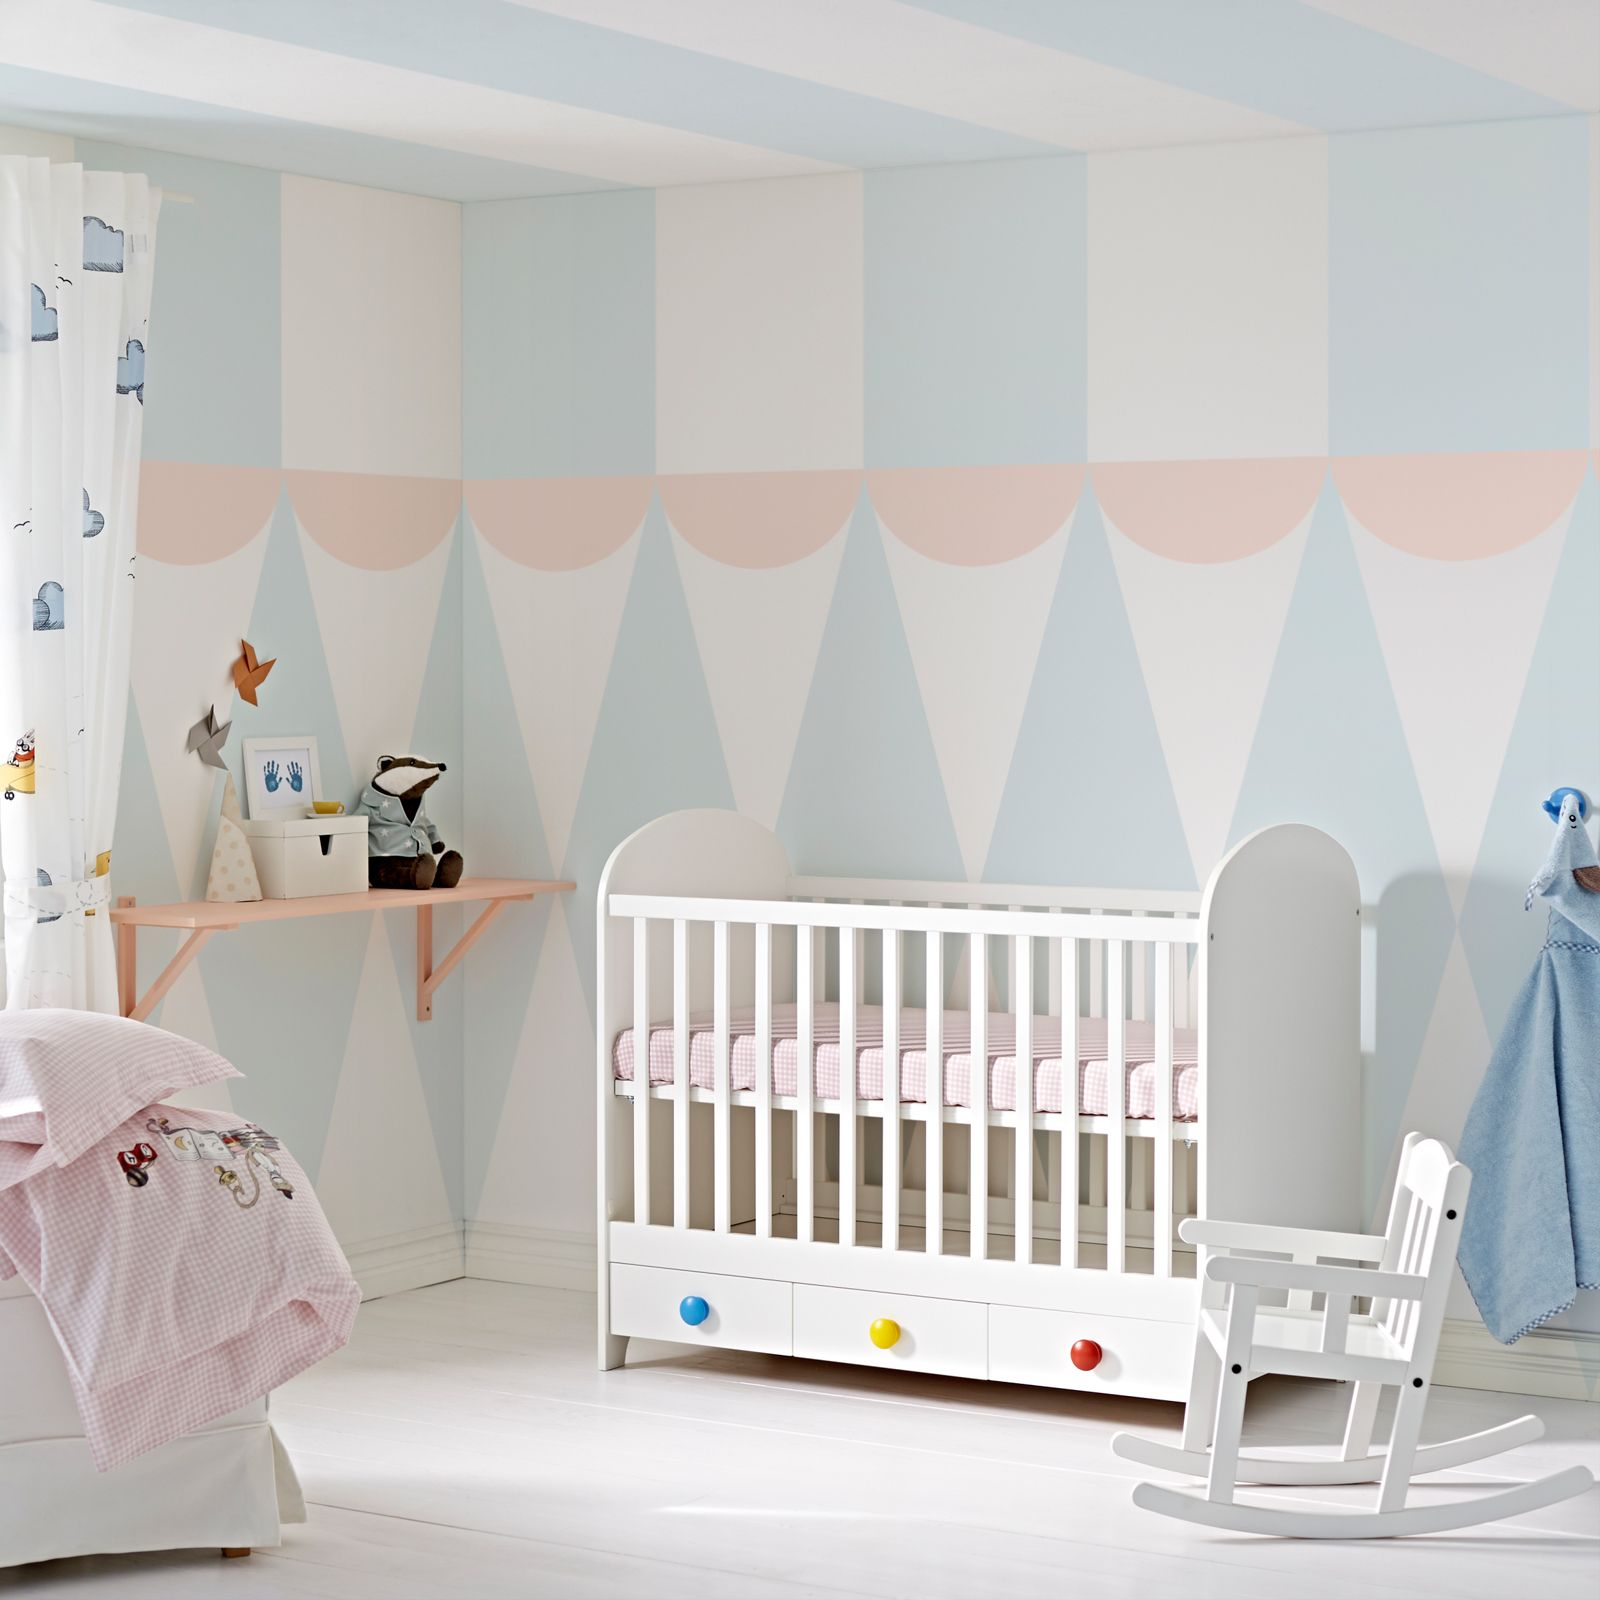 Such pretty pastel paint colors Love the way the walls and ceiling